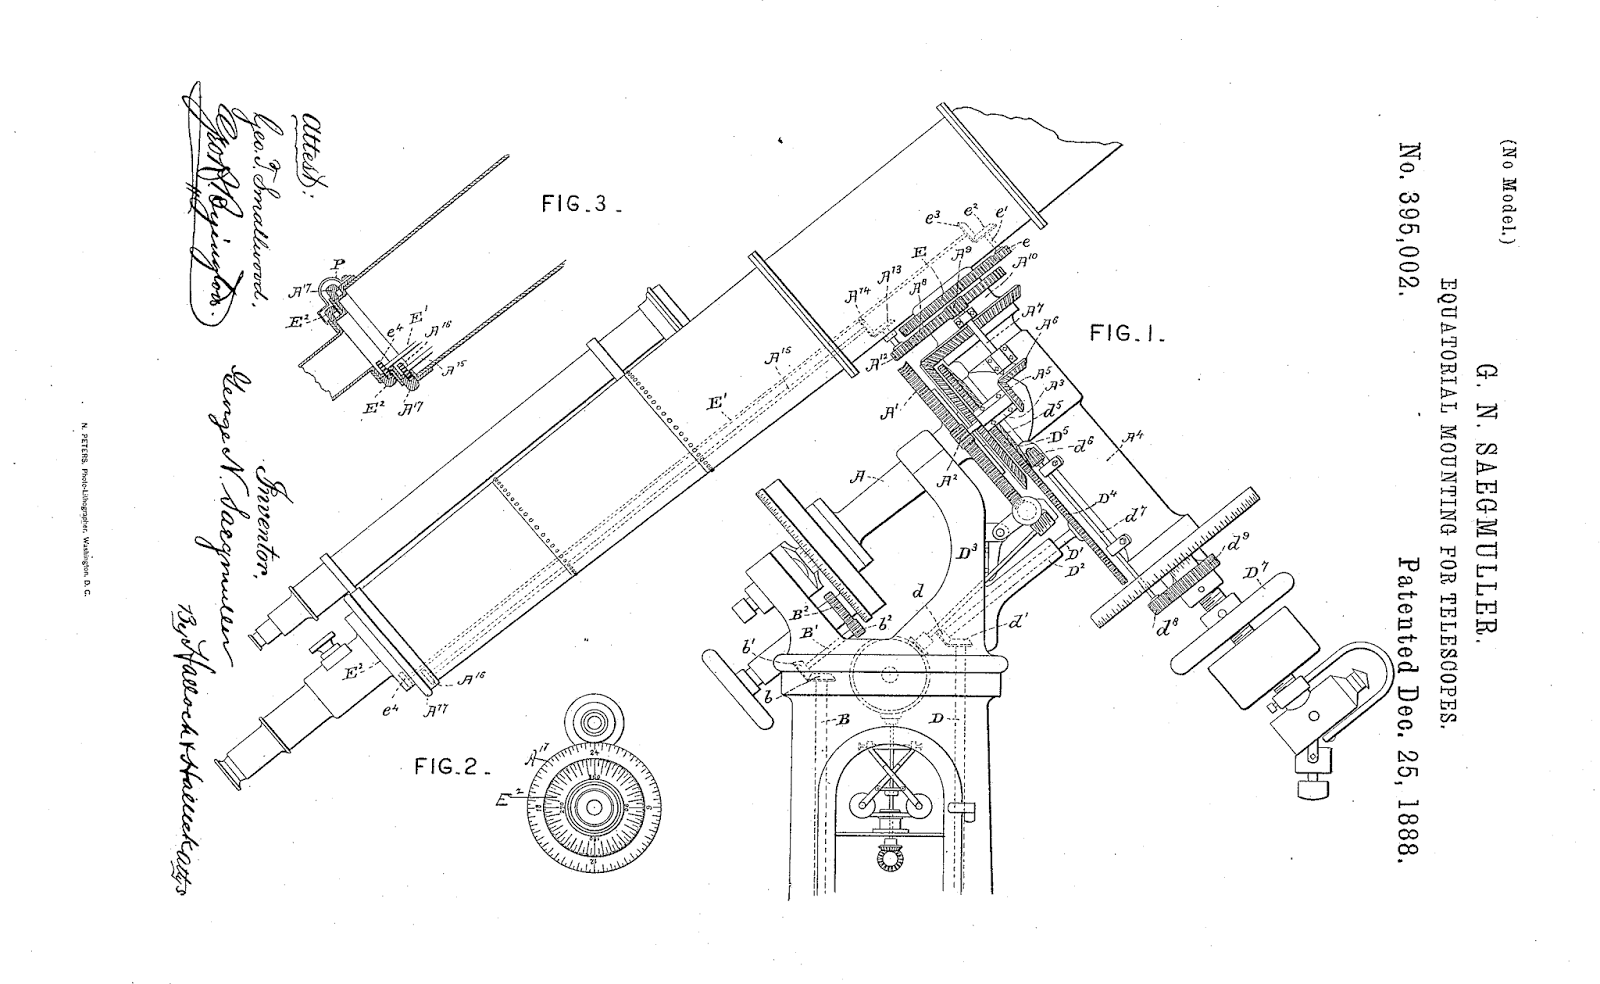 Equatorial Mounting for Telescopes from Saegmuller patent.